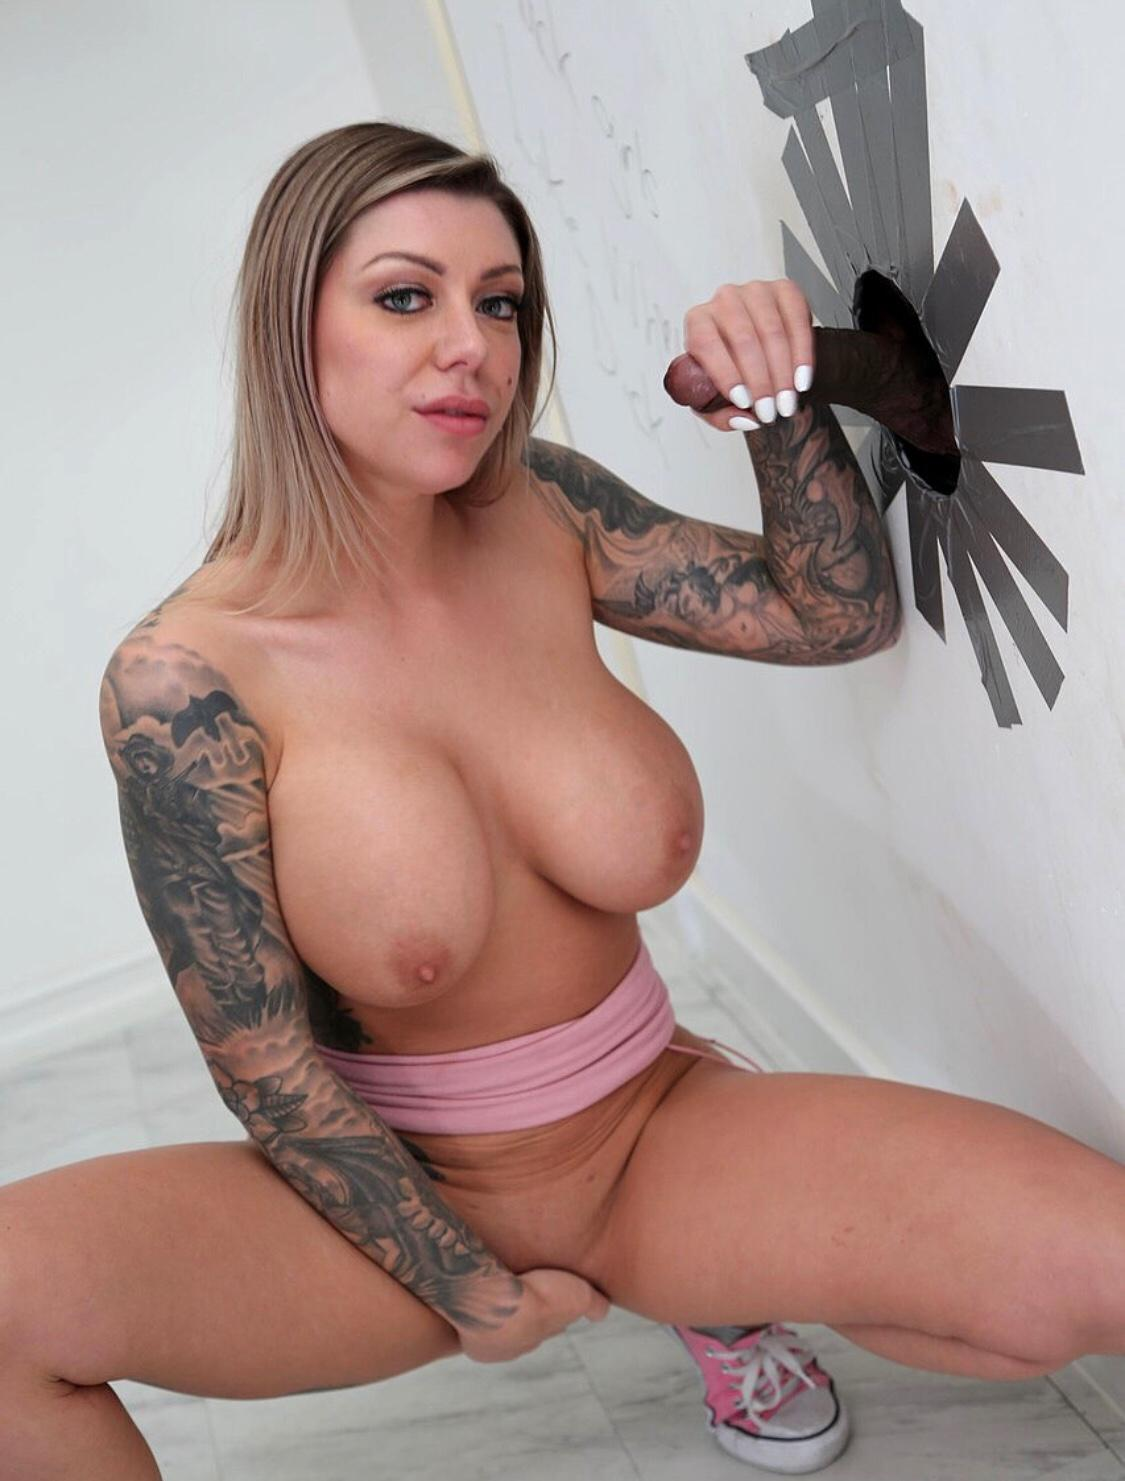 Available for hookup fun